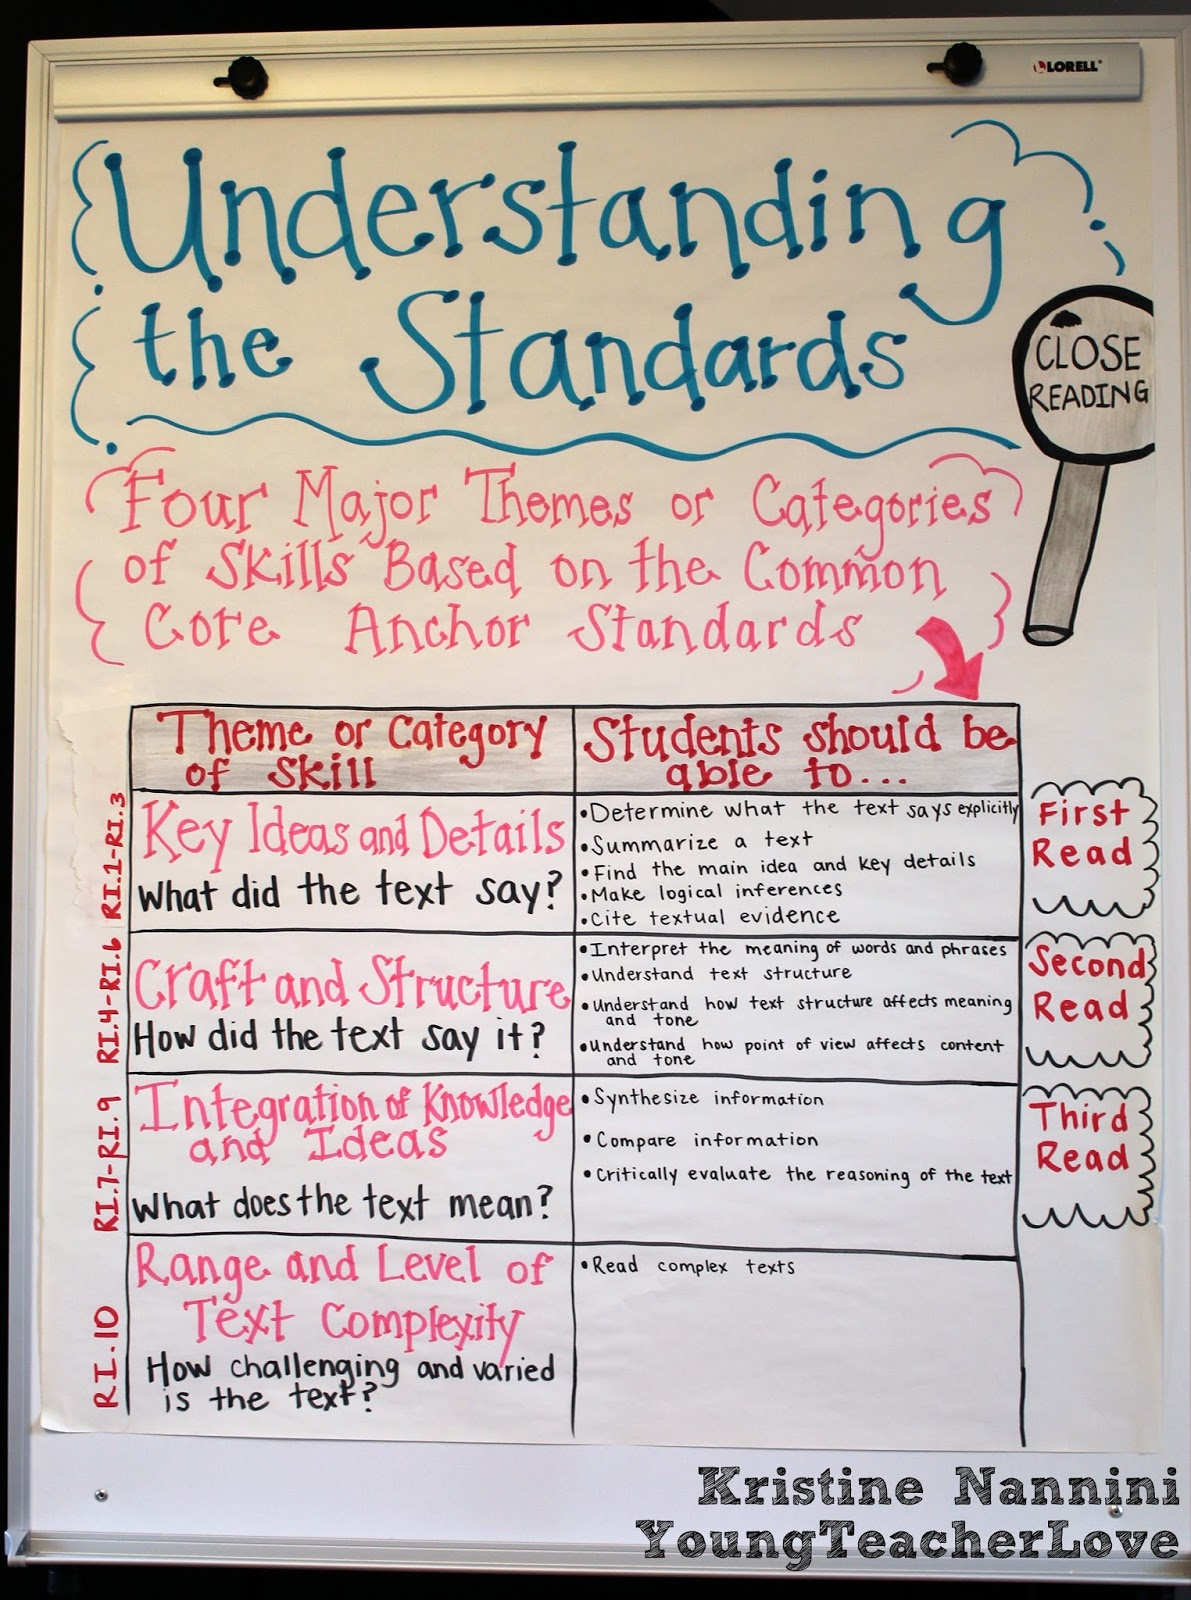 Understanding Close Reading - Young Teacher Love by Kristine Nannini